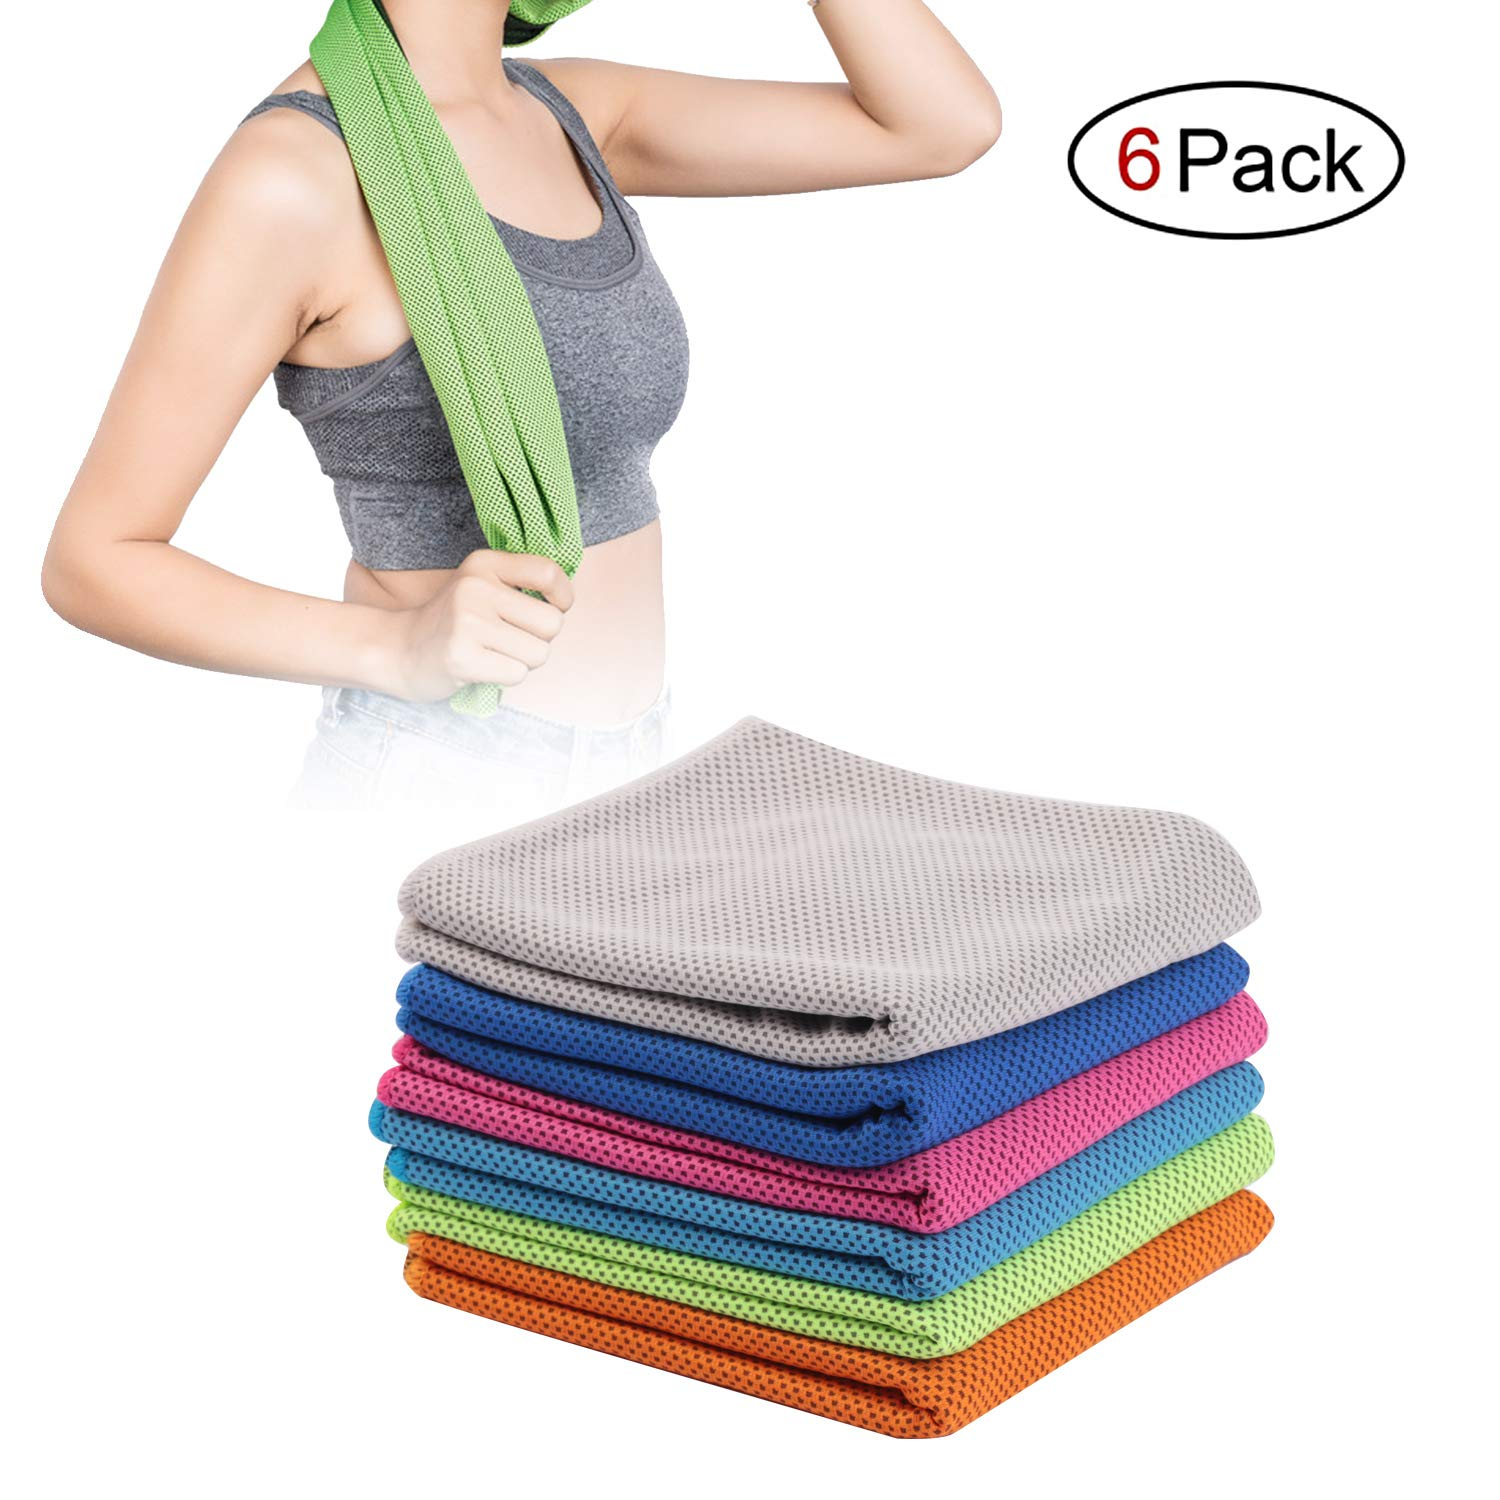 Mudax 6 Pack Cooling Towel, Ice Towel for Neck Instant Cooling, Chilly Towels for Men Women Kids, Super Absorbent Microfiber Towel for Athletes, Workout, Sports, Fitness, Gym, Running, Camping